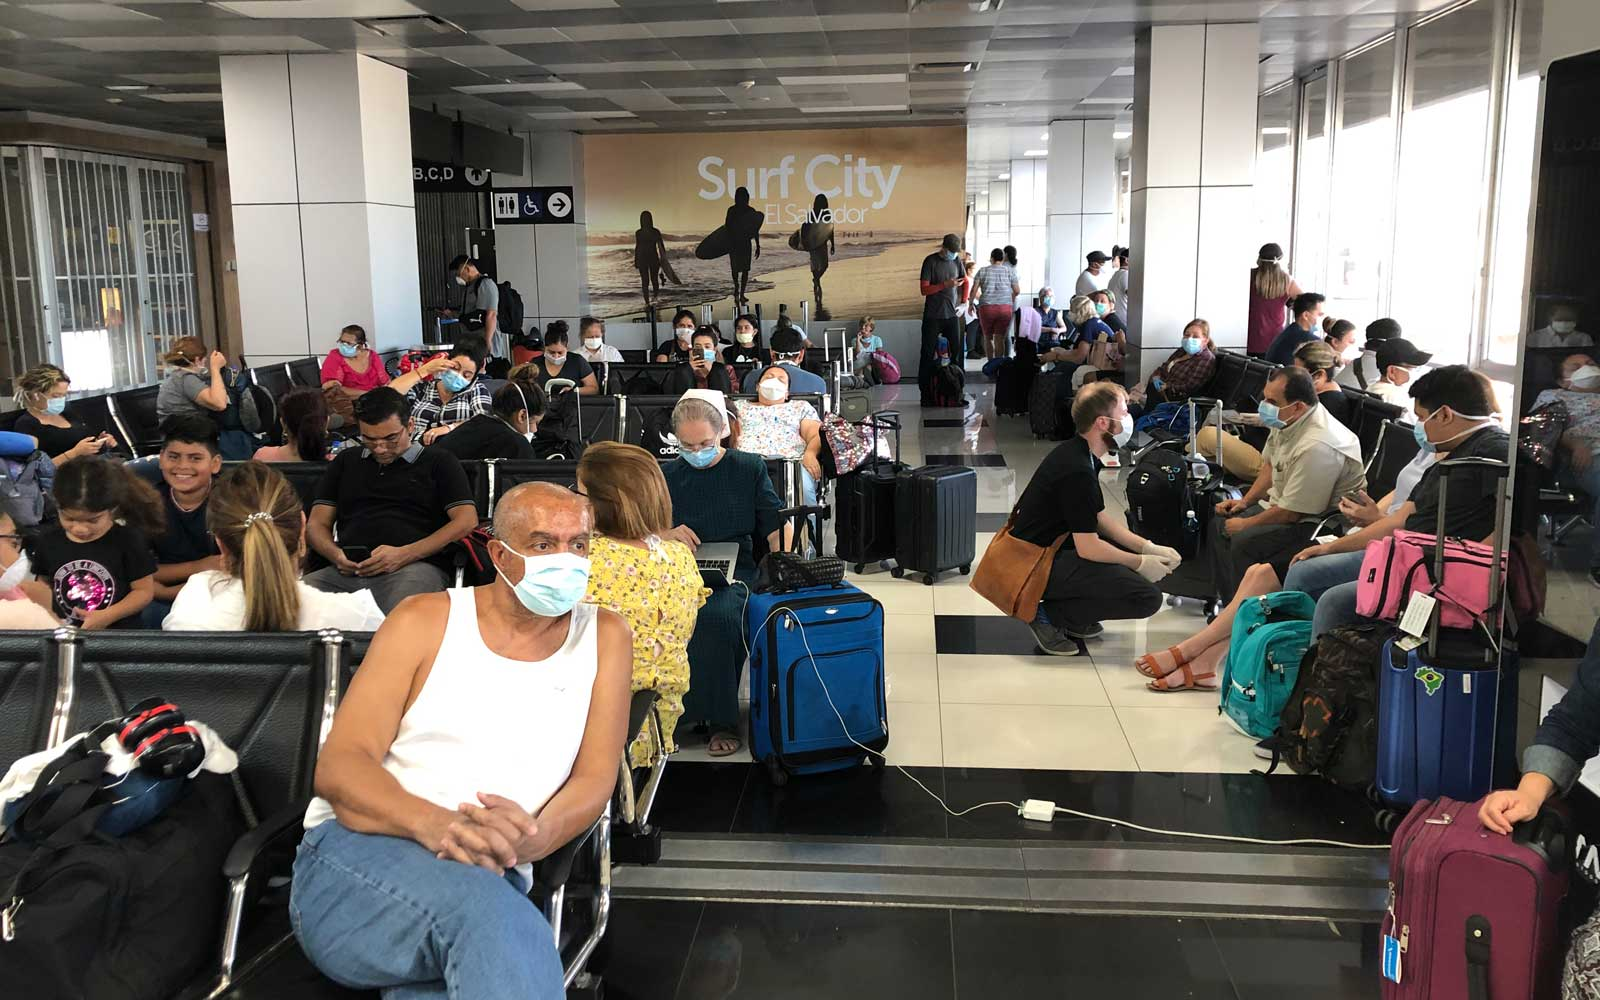 Eastern Airlines passenger gate, Americans wait for flights home during Covid-19 Pandemic